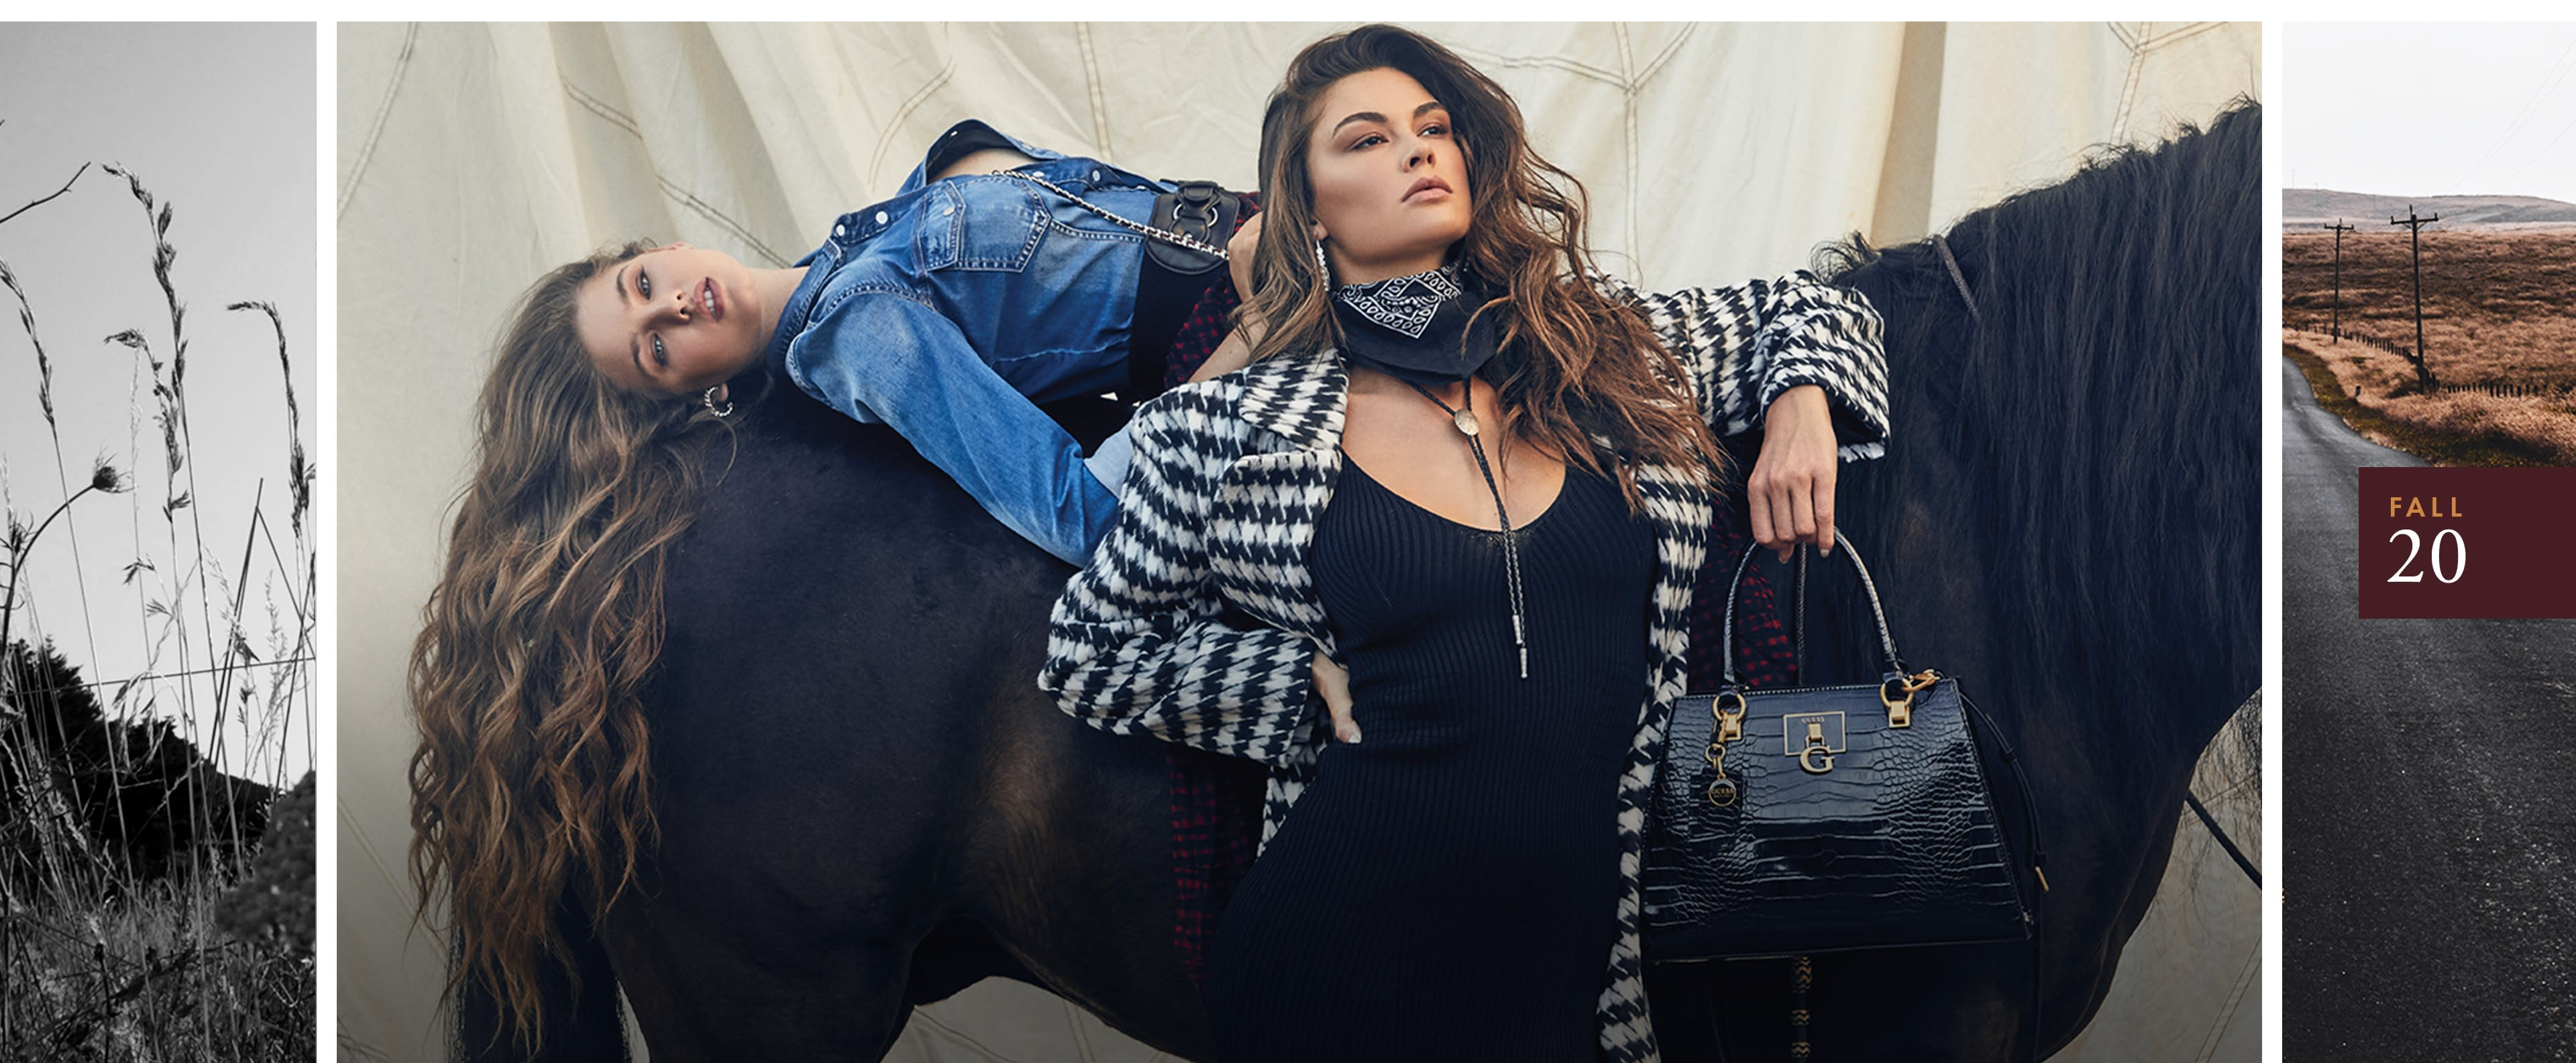 GUESS Fall Campaign